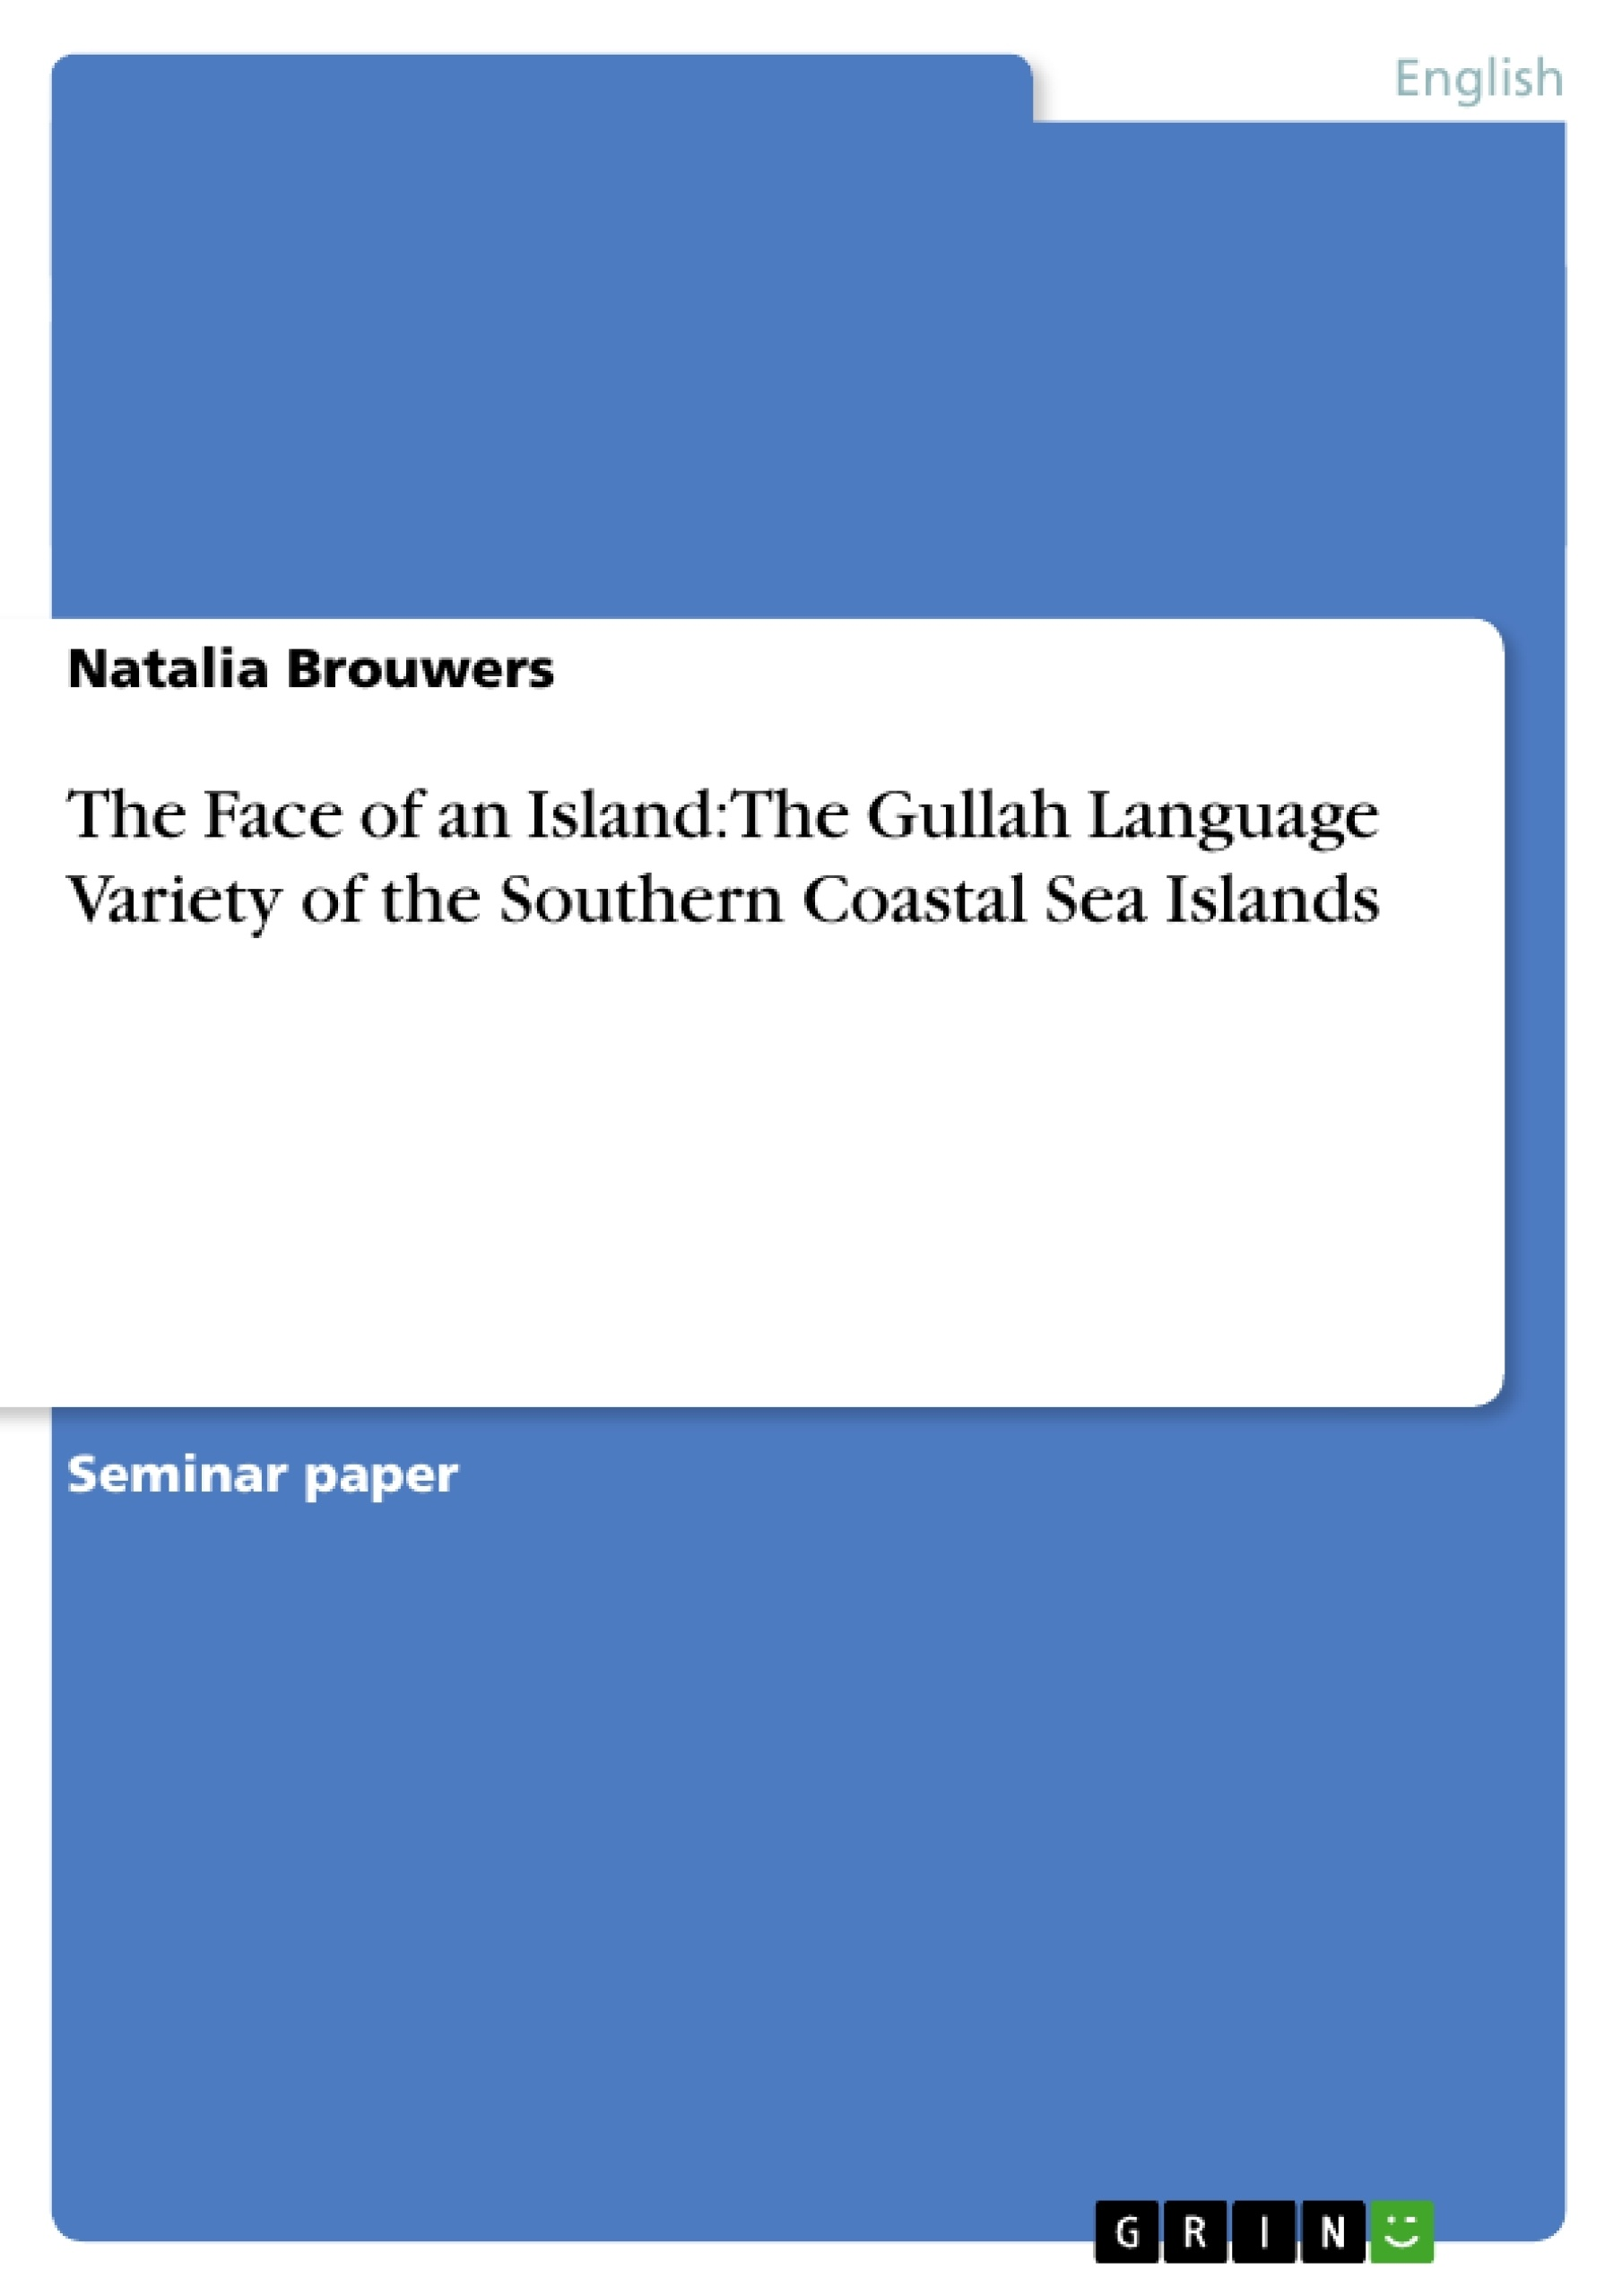 Title: The Face of an Island: The Gullah Language Variety of the Southern Coastal Sea Islands